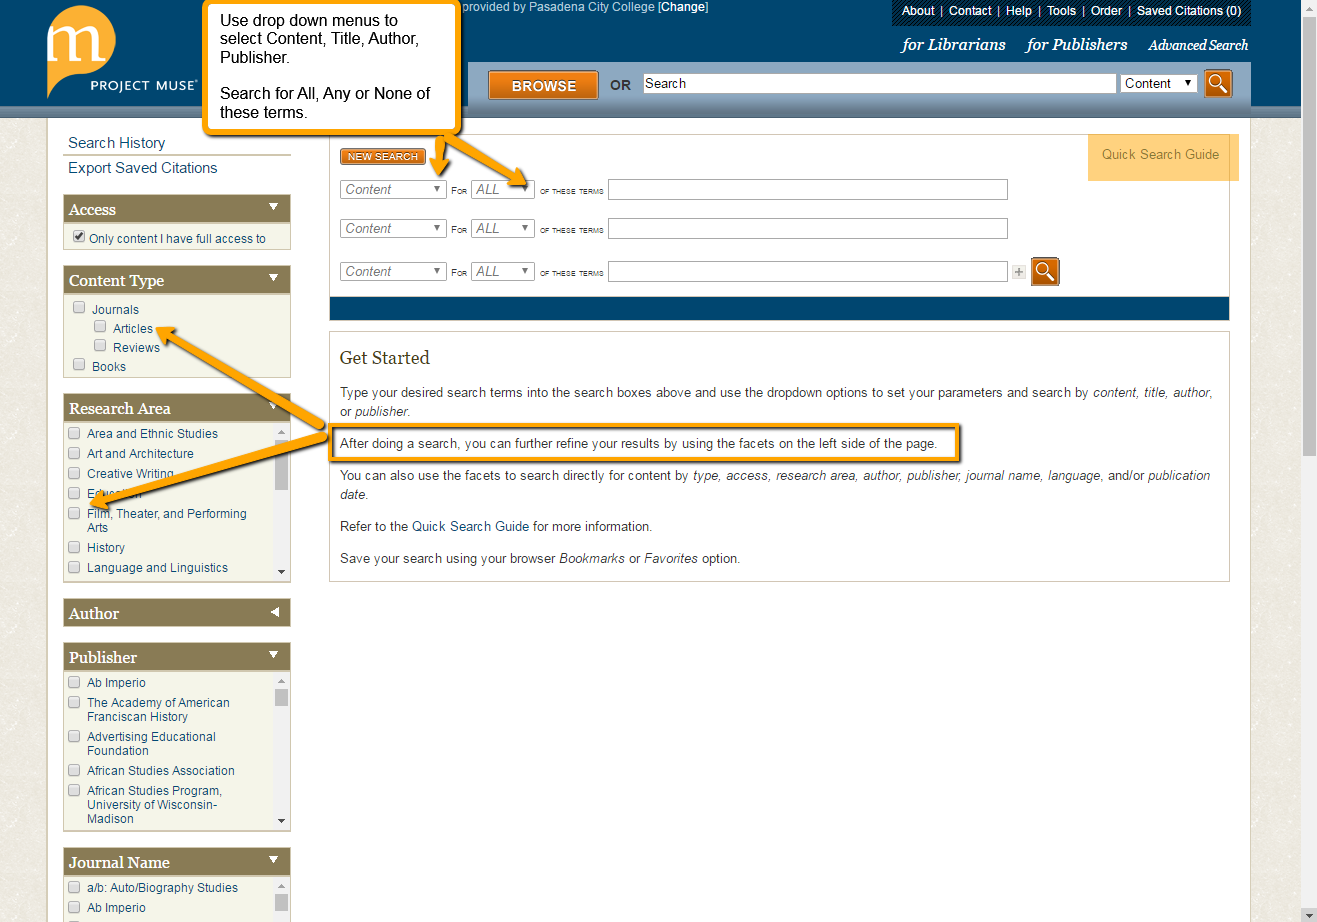 Advanced Search Page & Search Example - Project MUSE Database Guide